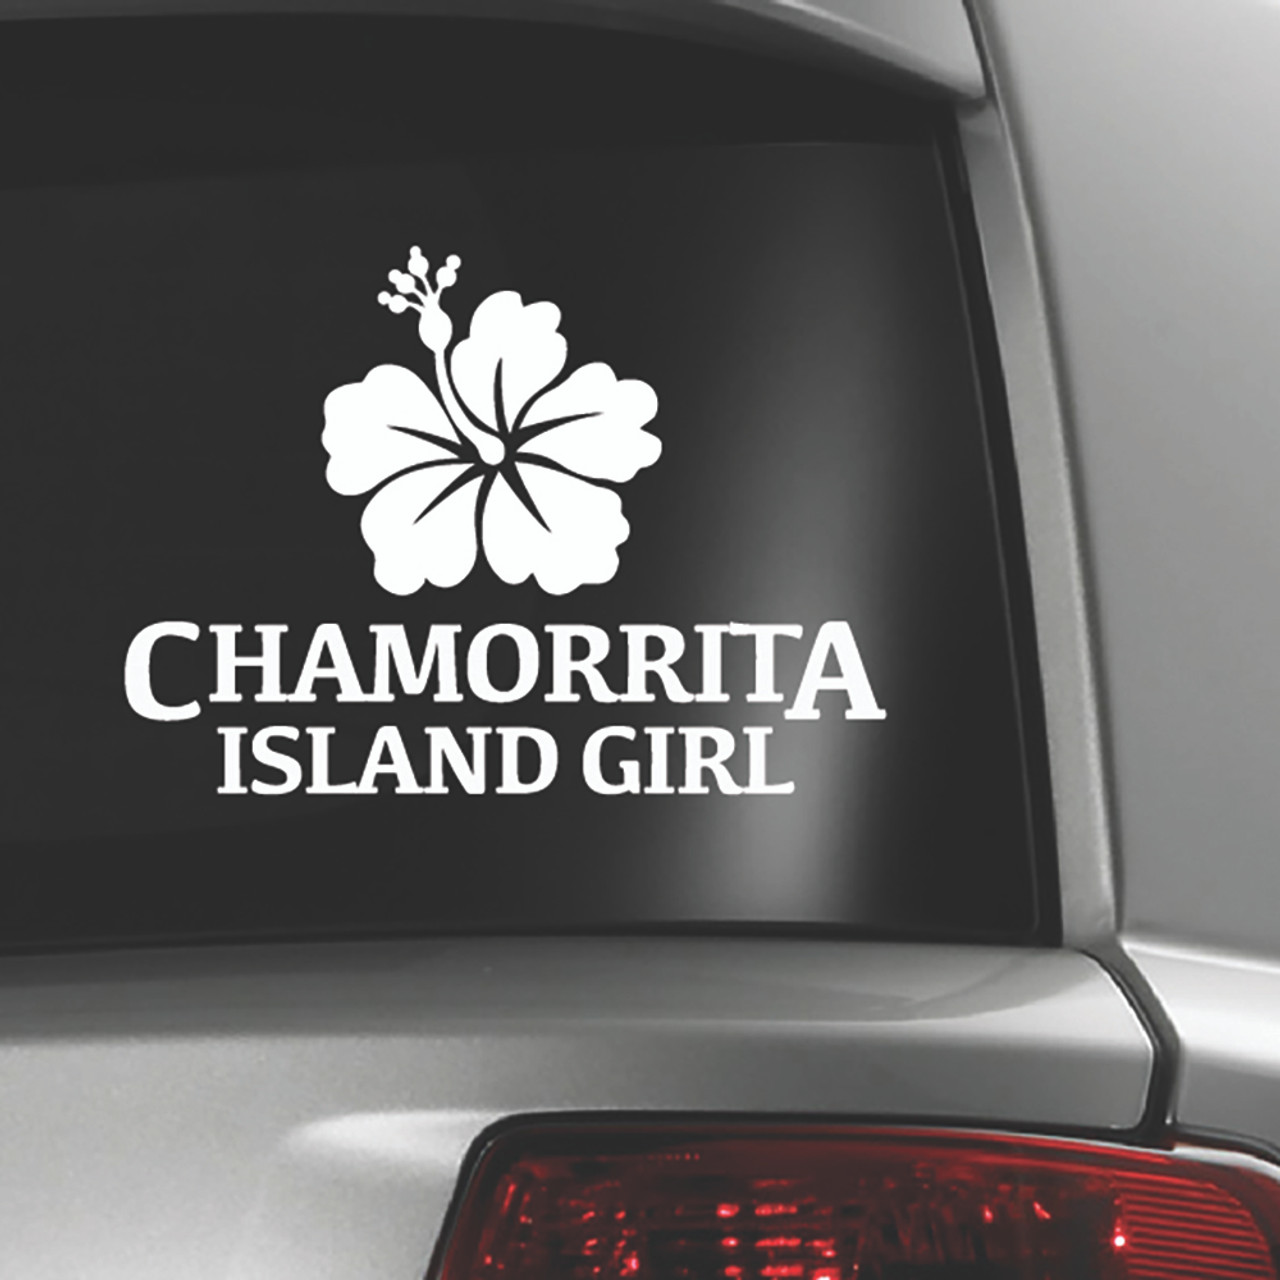 Hibiscus Chamorrita Island Girl White Sticker Decal